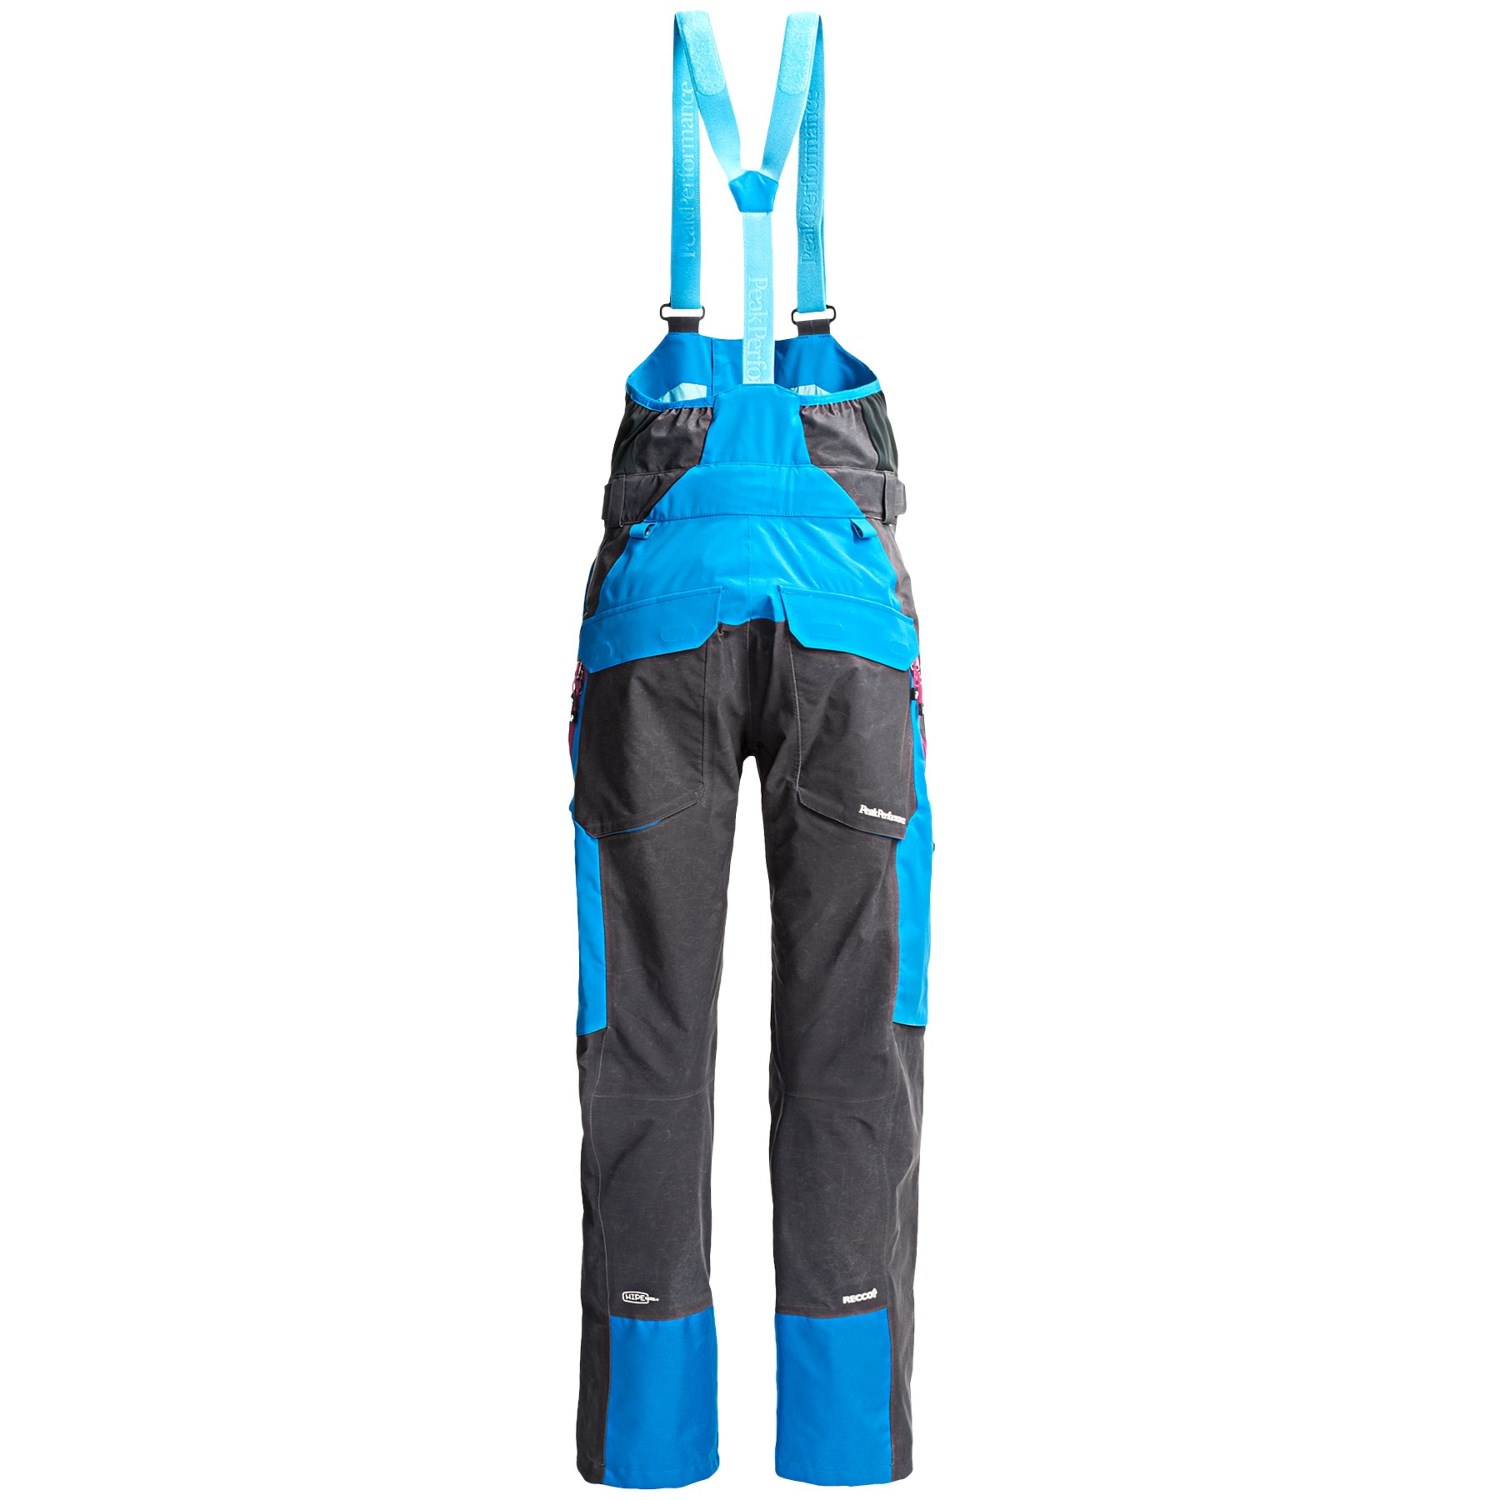 peak women Shop a wide selection of outdoor gear women's peak bib at dicks sporting goods and order online for the finest quality products from the top brands you trust.